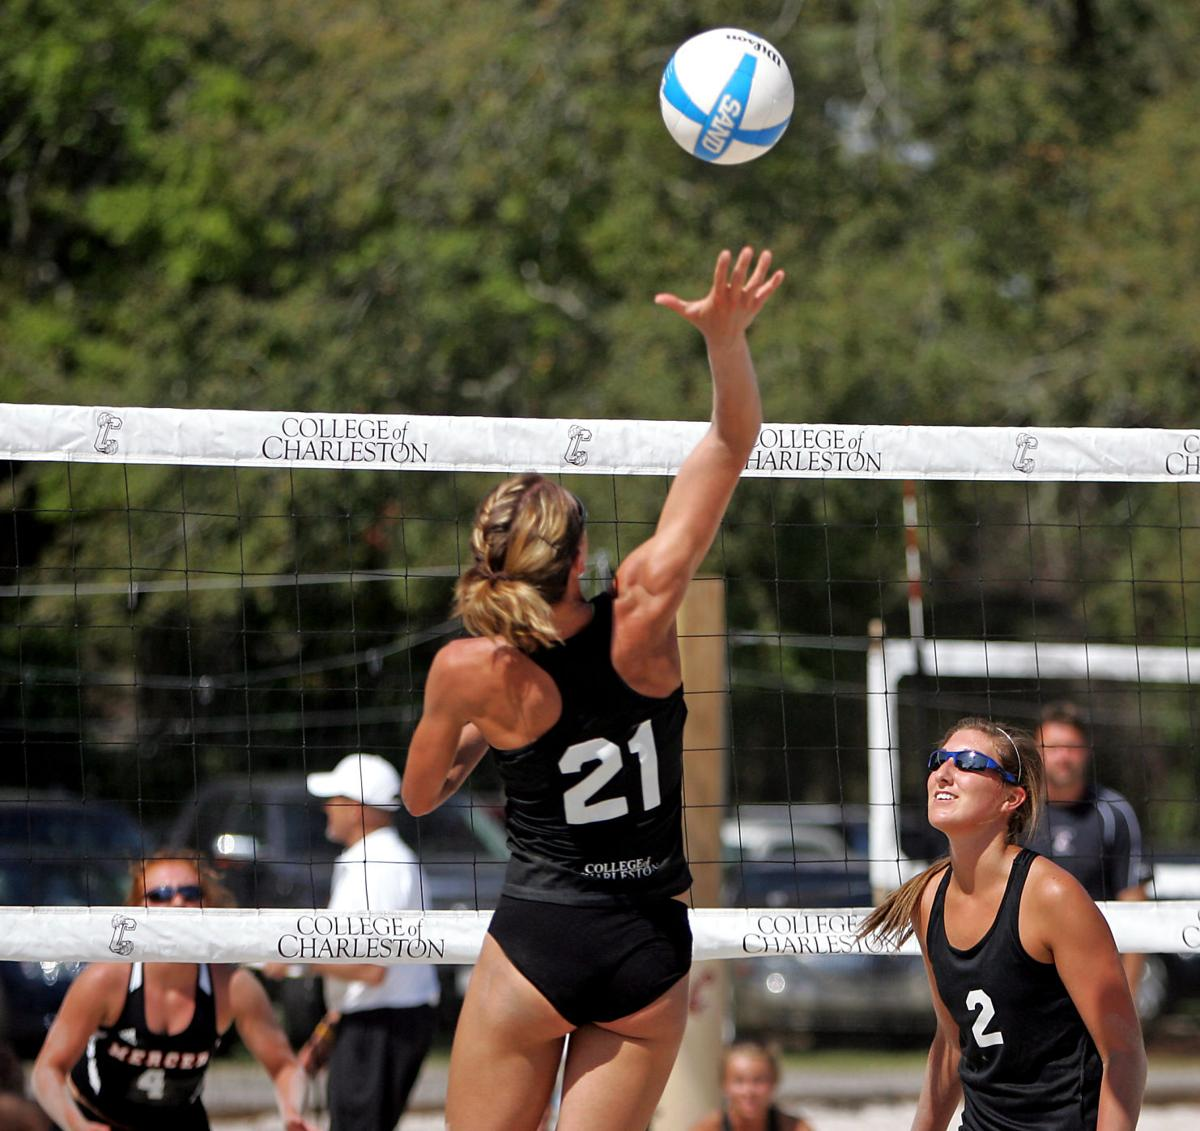 College of Charleston opens sand volleyball season with weekend tournament